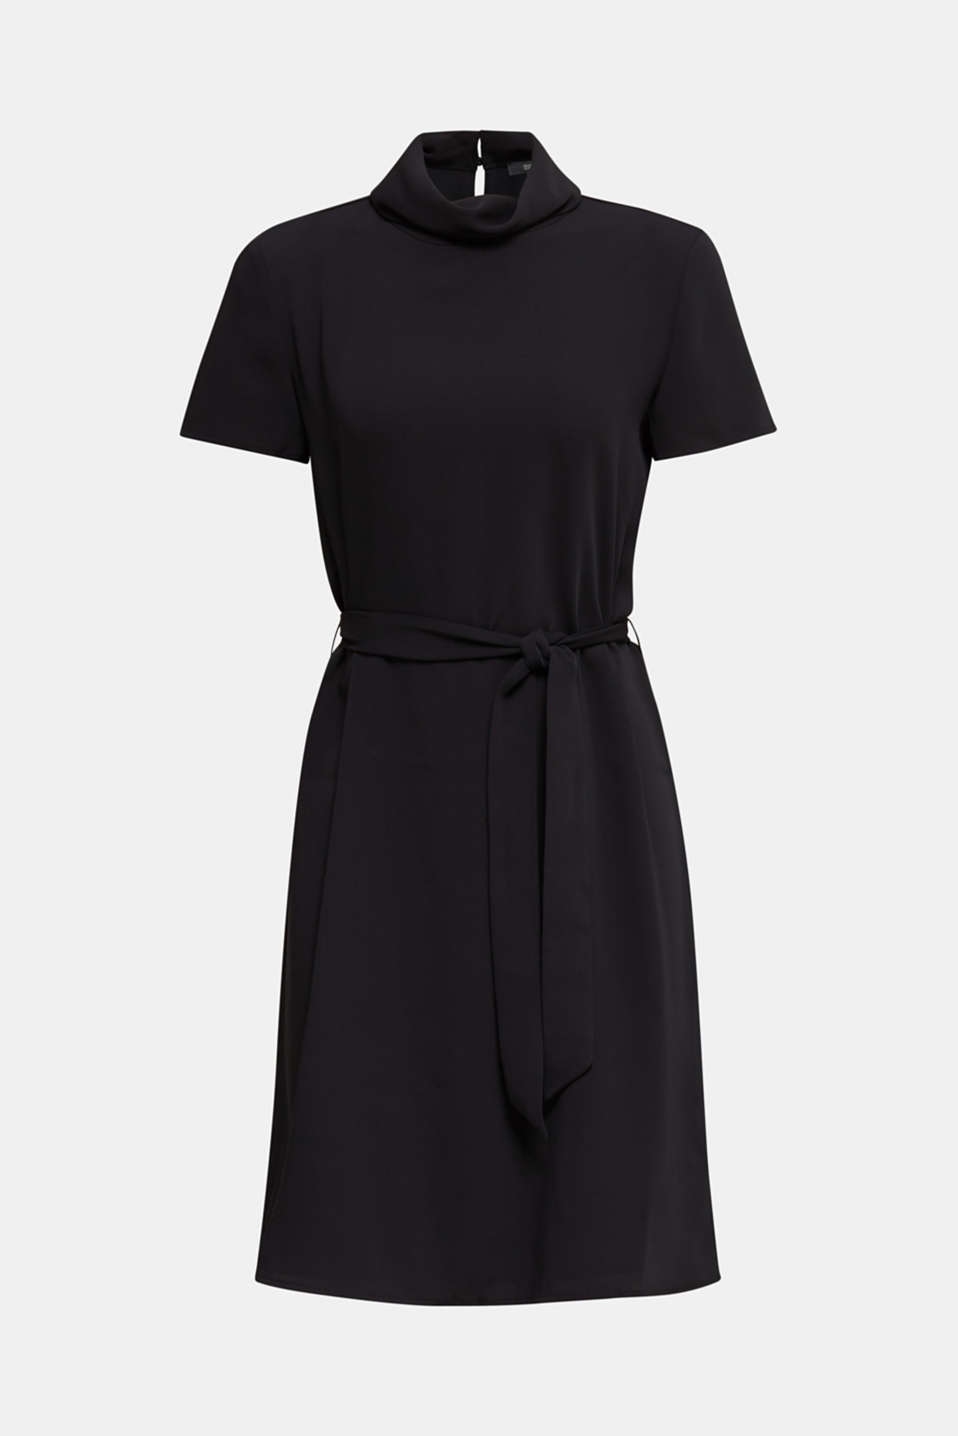 Cloth polo neck dress, BLACK, detail image number 7